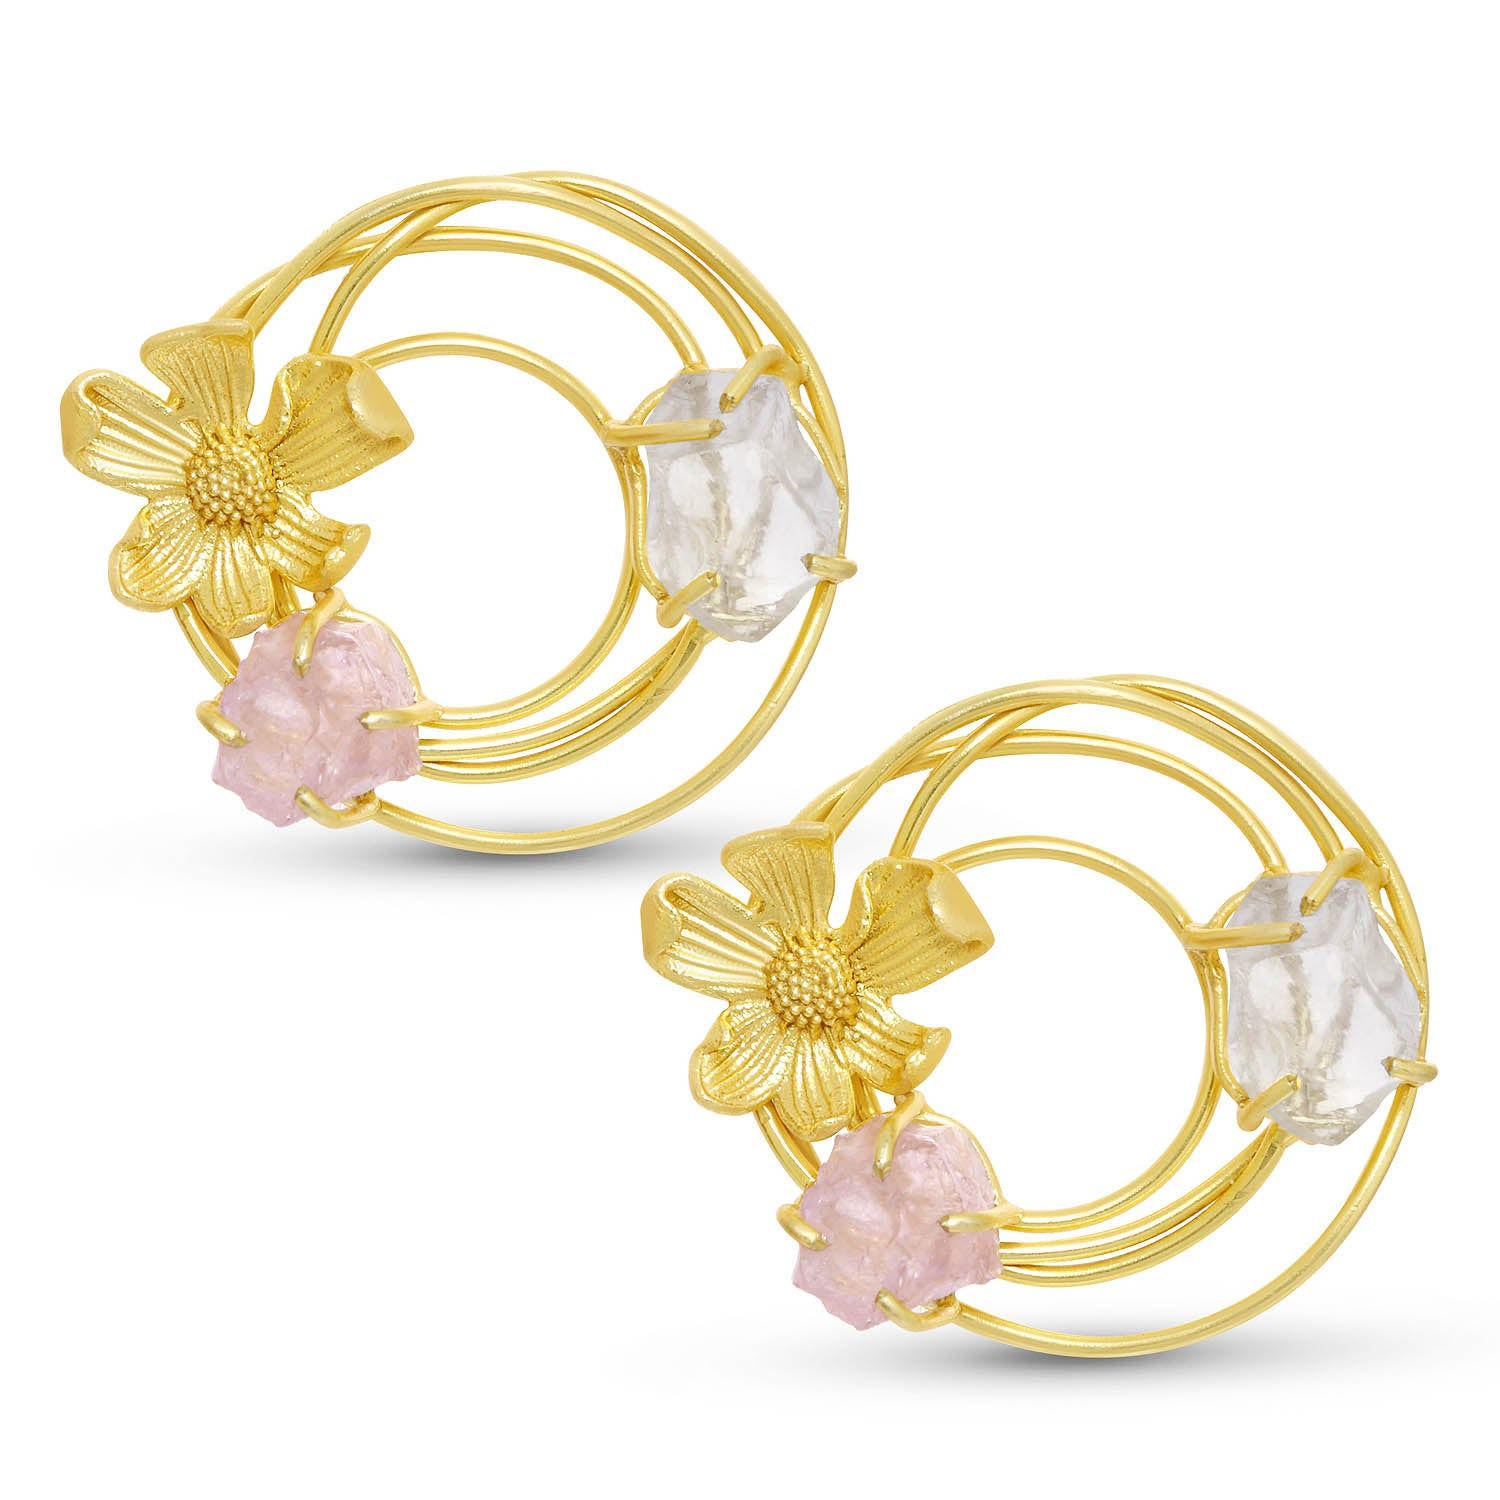 Sukkhi Glitzy Gold Plated Floral Stud Earring For Women-SUKKHI1-Earring